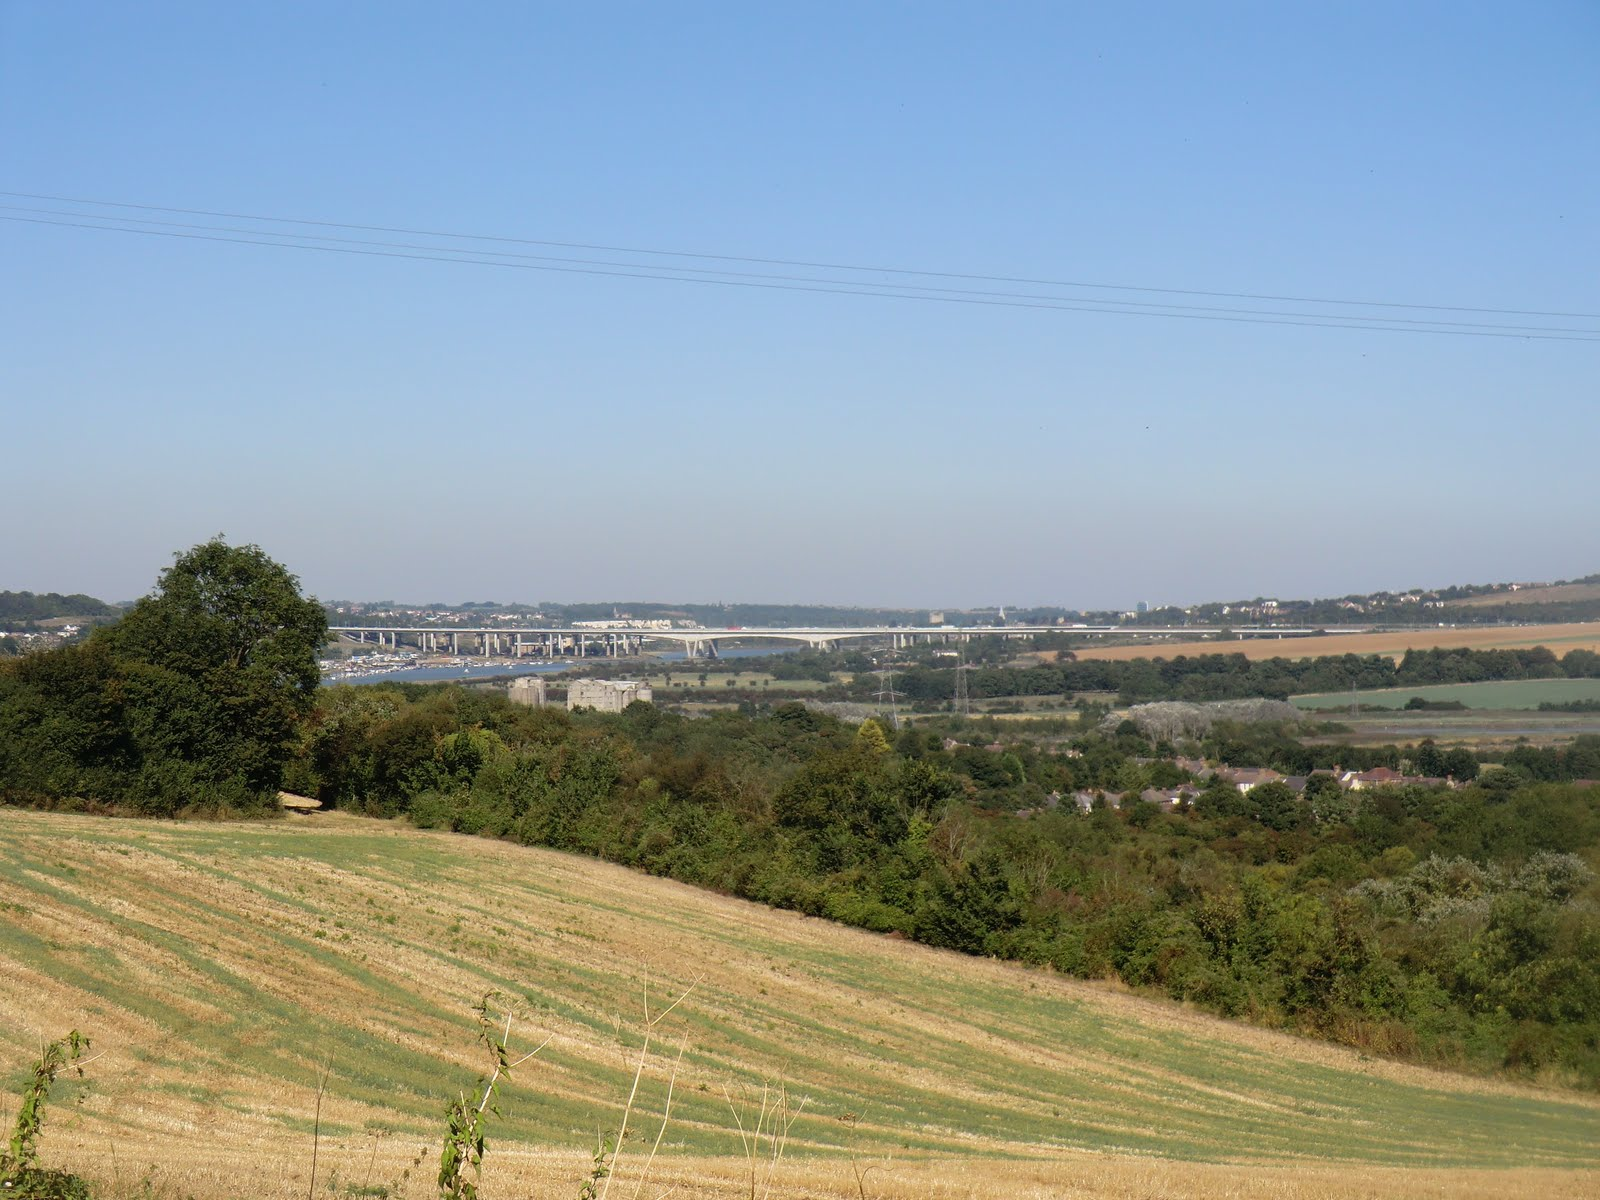 CIMG3935 Distant view of the Medway River Crossings